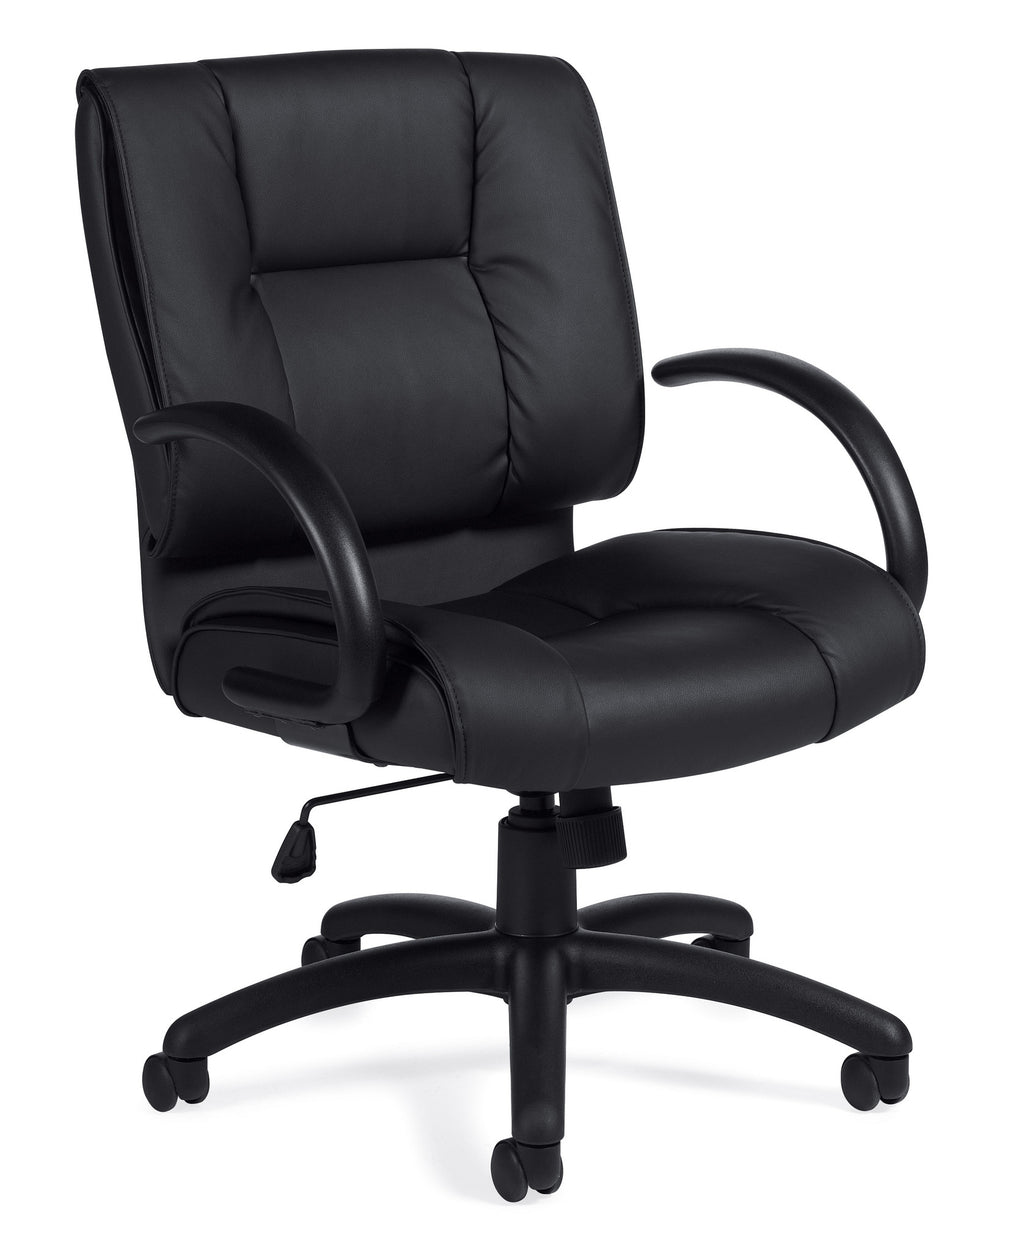 OTG 2701 Conference Chair